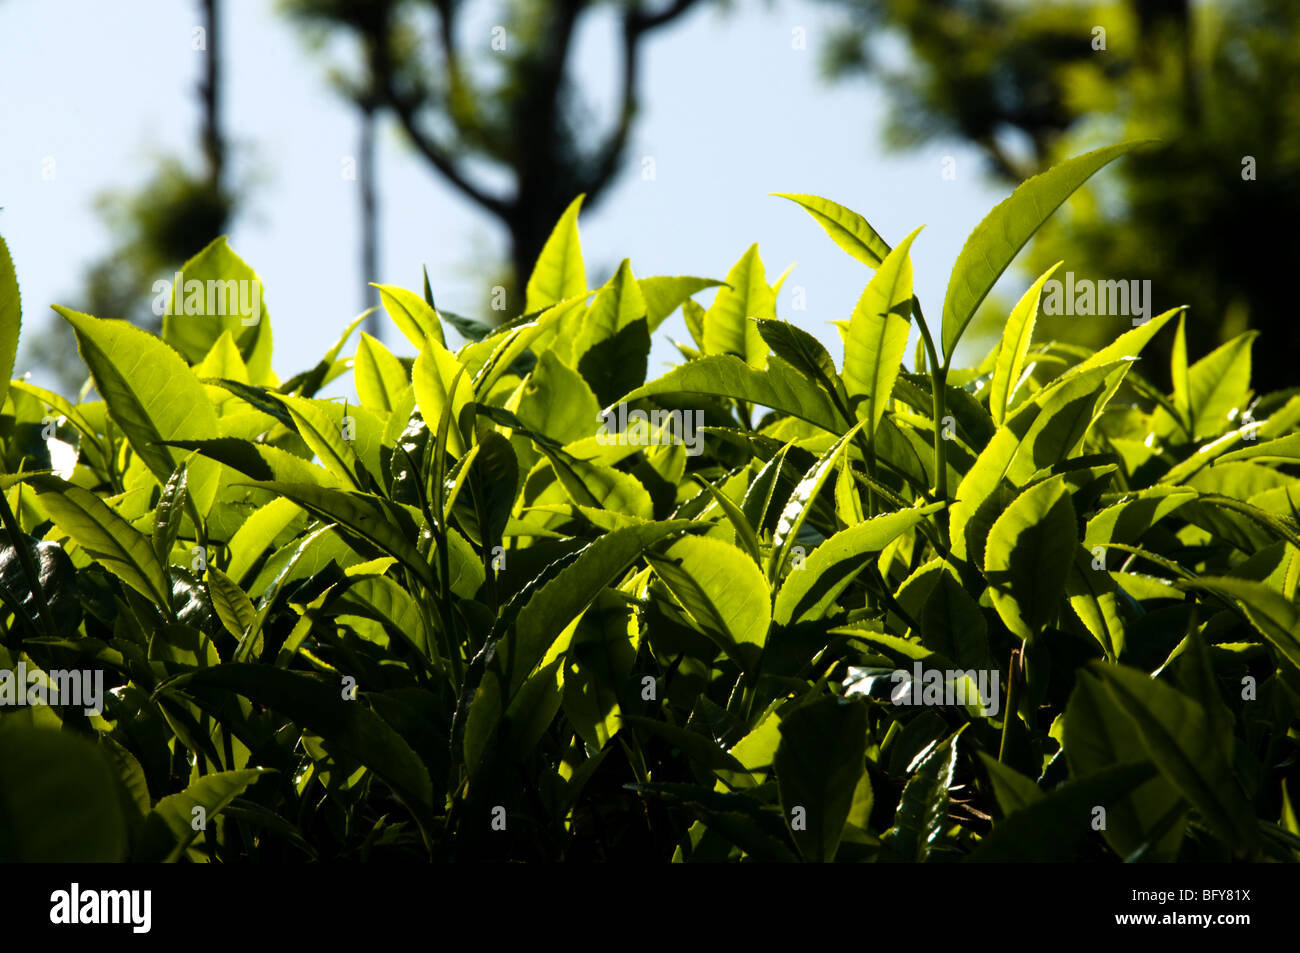 Tea leaves, close up in daylight, Munnar - Stock Image